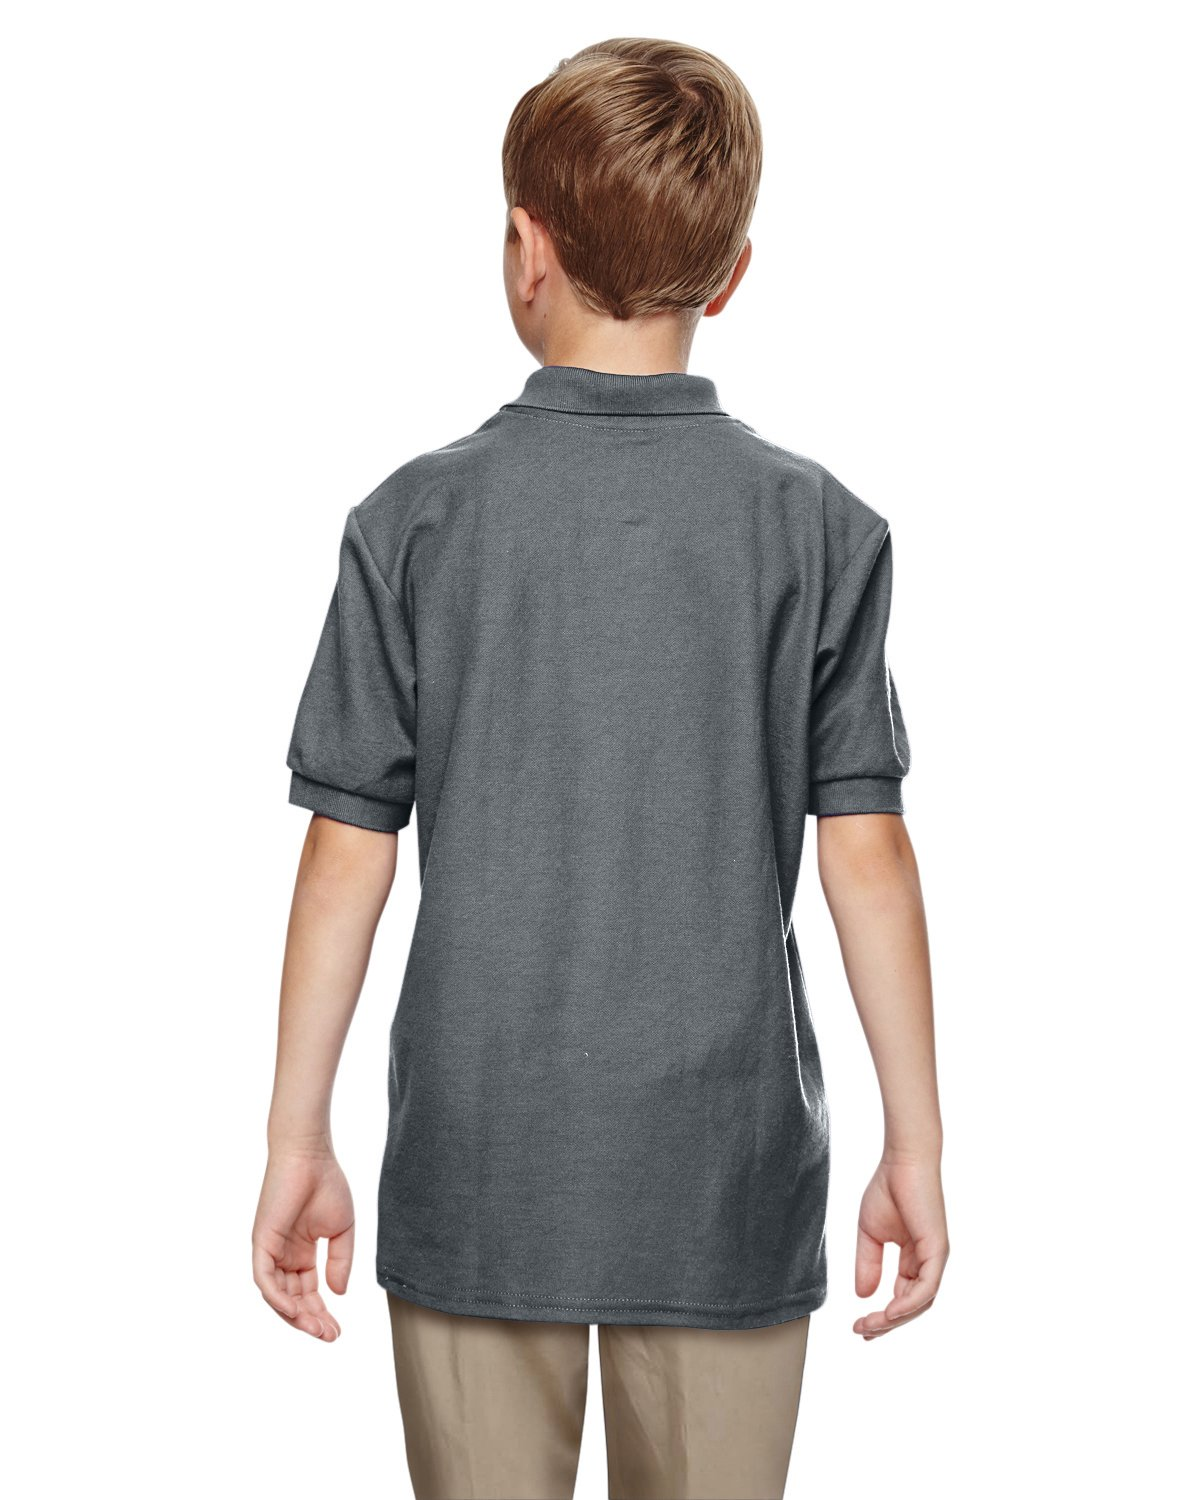 Gildan Boys DryBlend 6.3 oz. Double Piqué Sport Shirt (G728B) -Dark Heath -S-12PK by Gildan (Image #4)